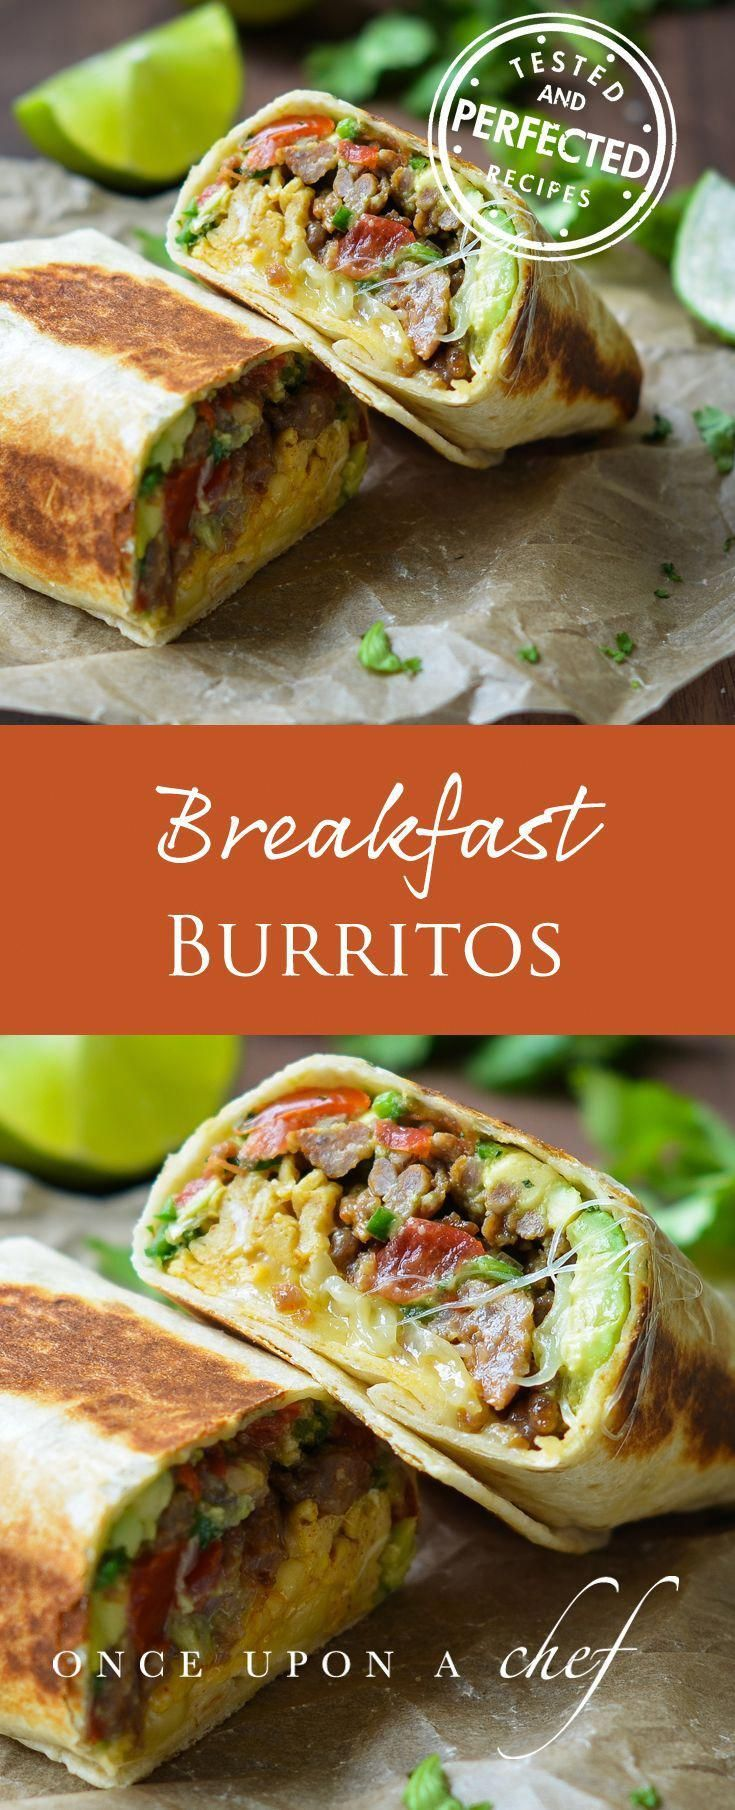 "Filled with spicy sausage, smoky scrambled eggs, cheese, and a bright, fresh avocado-tomato salsa, these breakfast burritos are not only easy to make, but also delicious any time of day. We especially love them for ""brinner."""